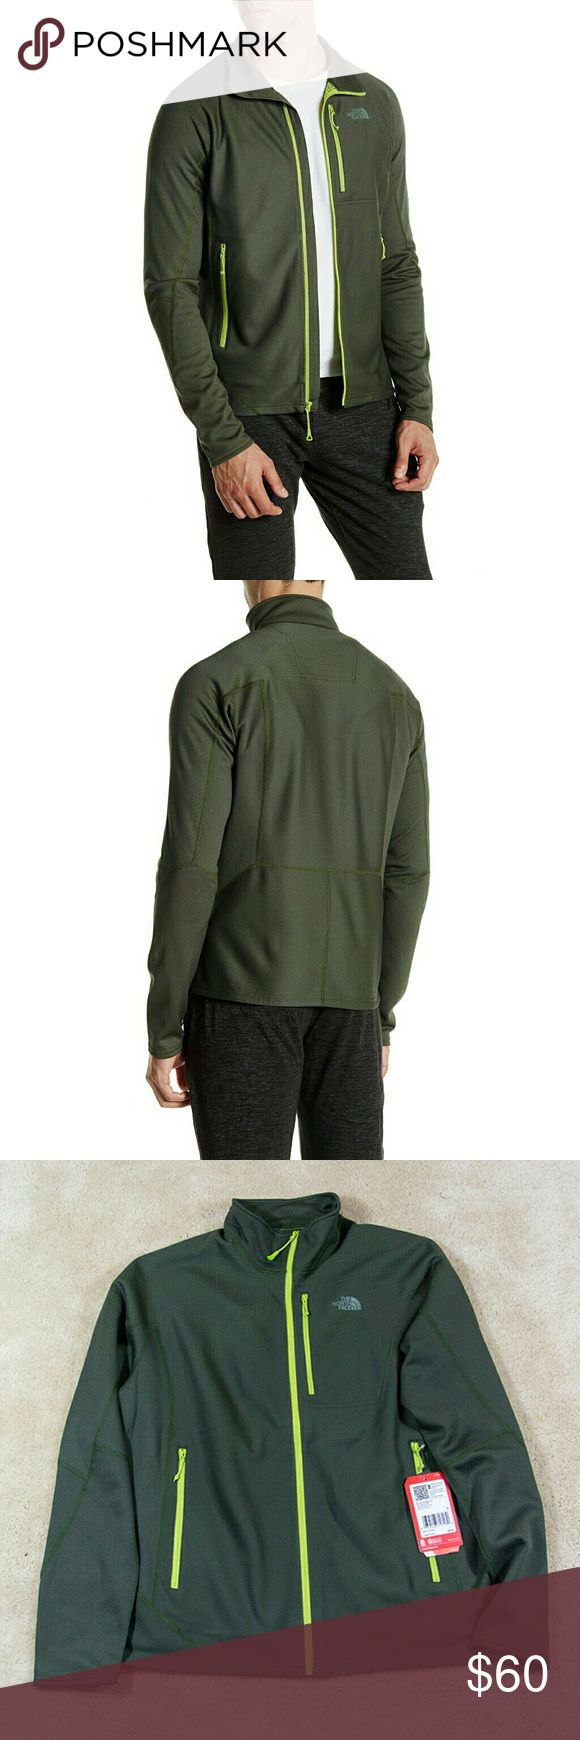 """NWT THE NORTH FACE men's jacket New with tag The North Face men's fuse dolomiti jacket size XL MSRP $160  Color: spruce green  - Stand-up collar - 100% polyester - Long sleeves - Front zip closure - Printed logo - 3 front zip pockets - Approx. 27"""" length - Imported The North Face Jackets & Coats"""